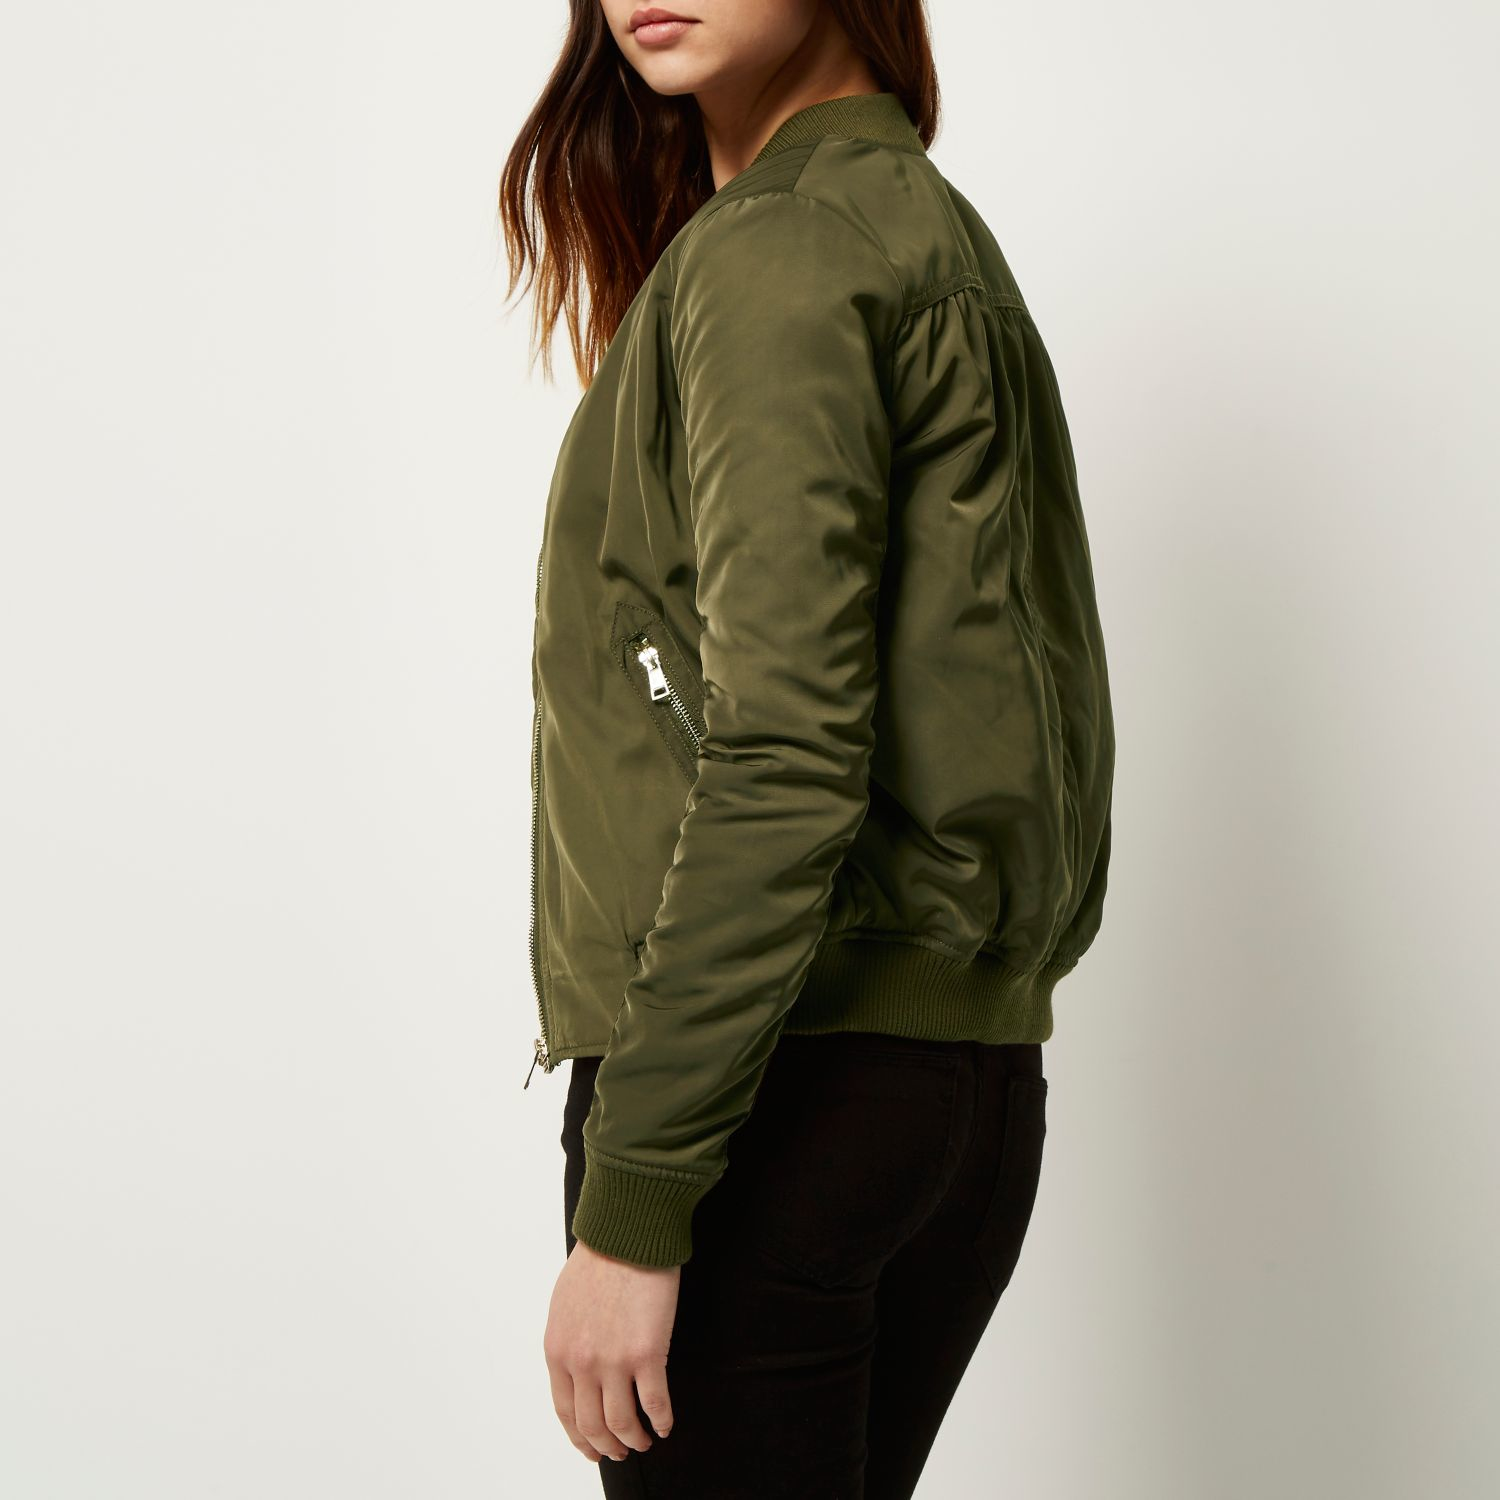 River island coats women